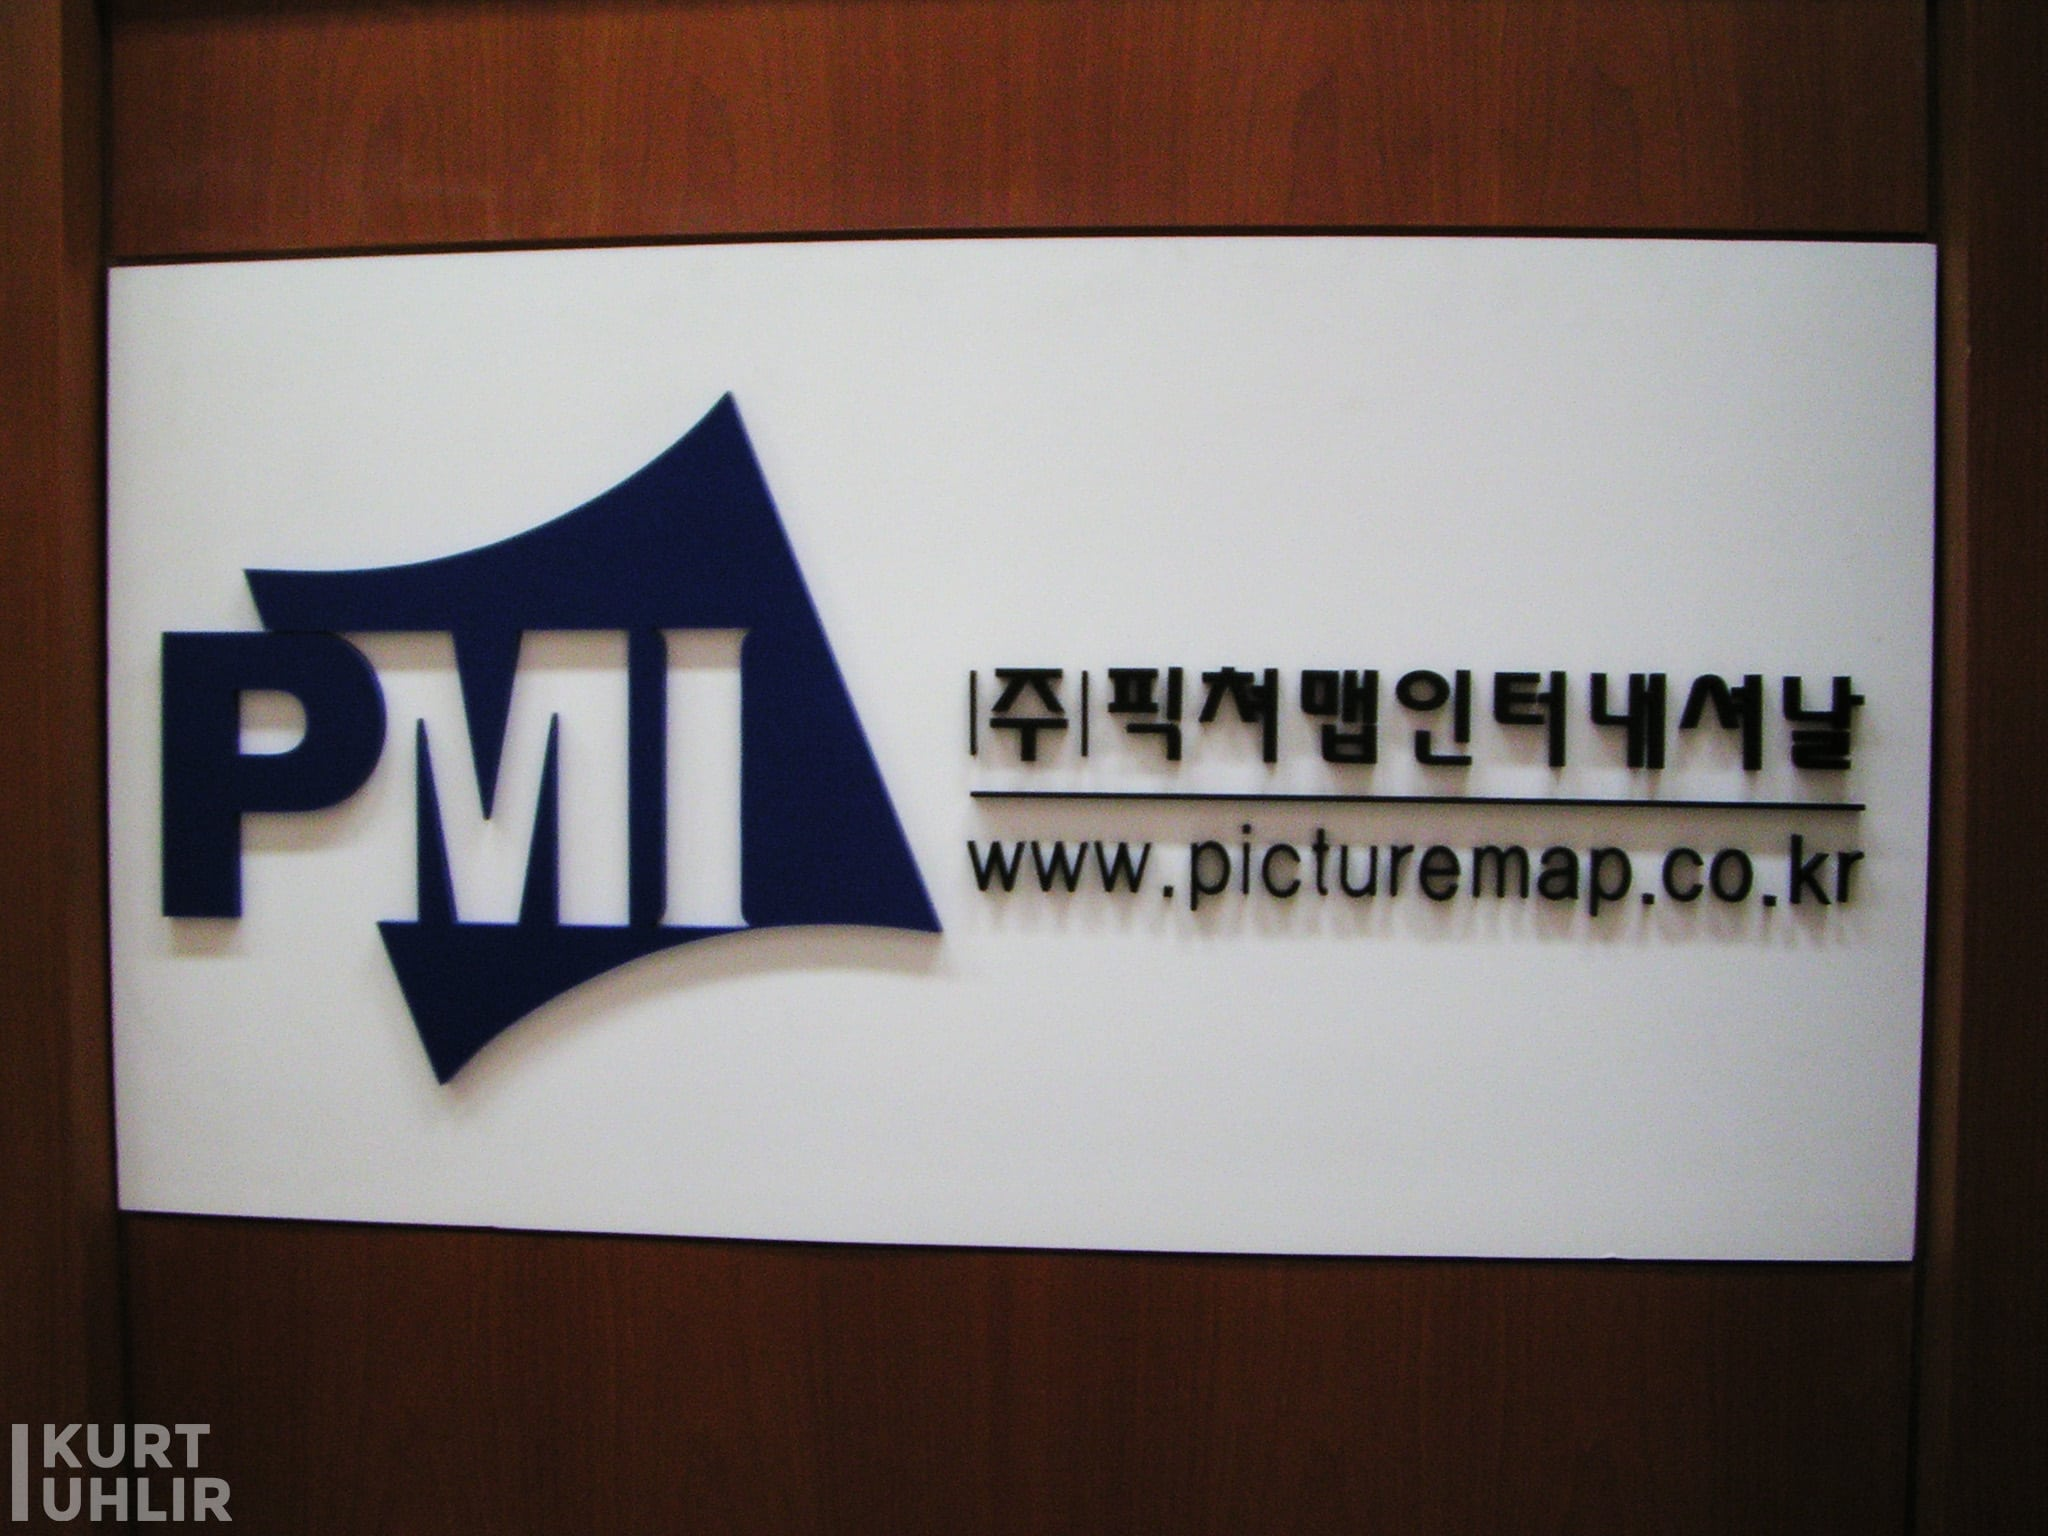 In July 2005, Navteq acquired Picture Map International (PMI), a South Korean digital map company, for about $30 million. Headquarter's sign as we arrive.